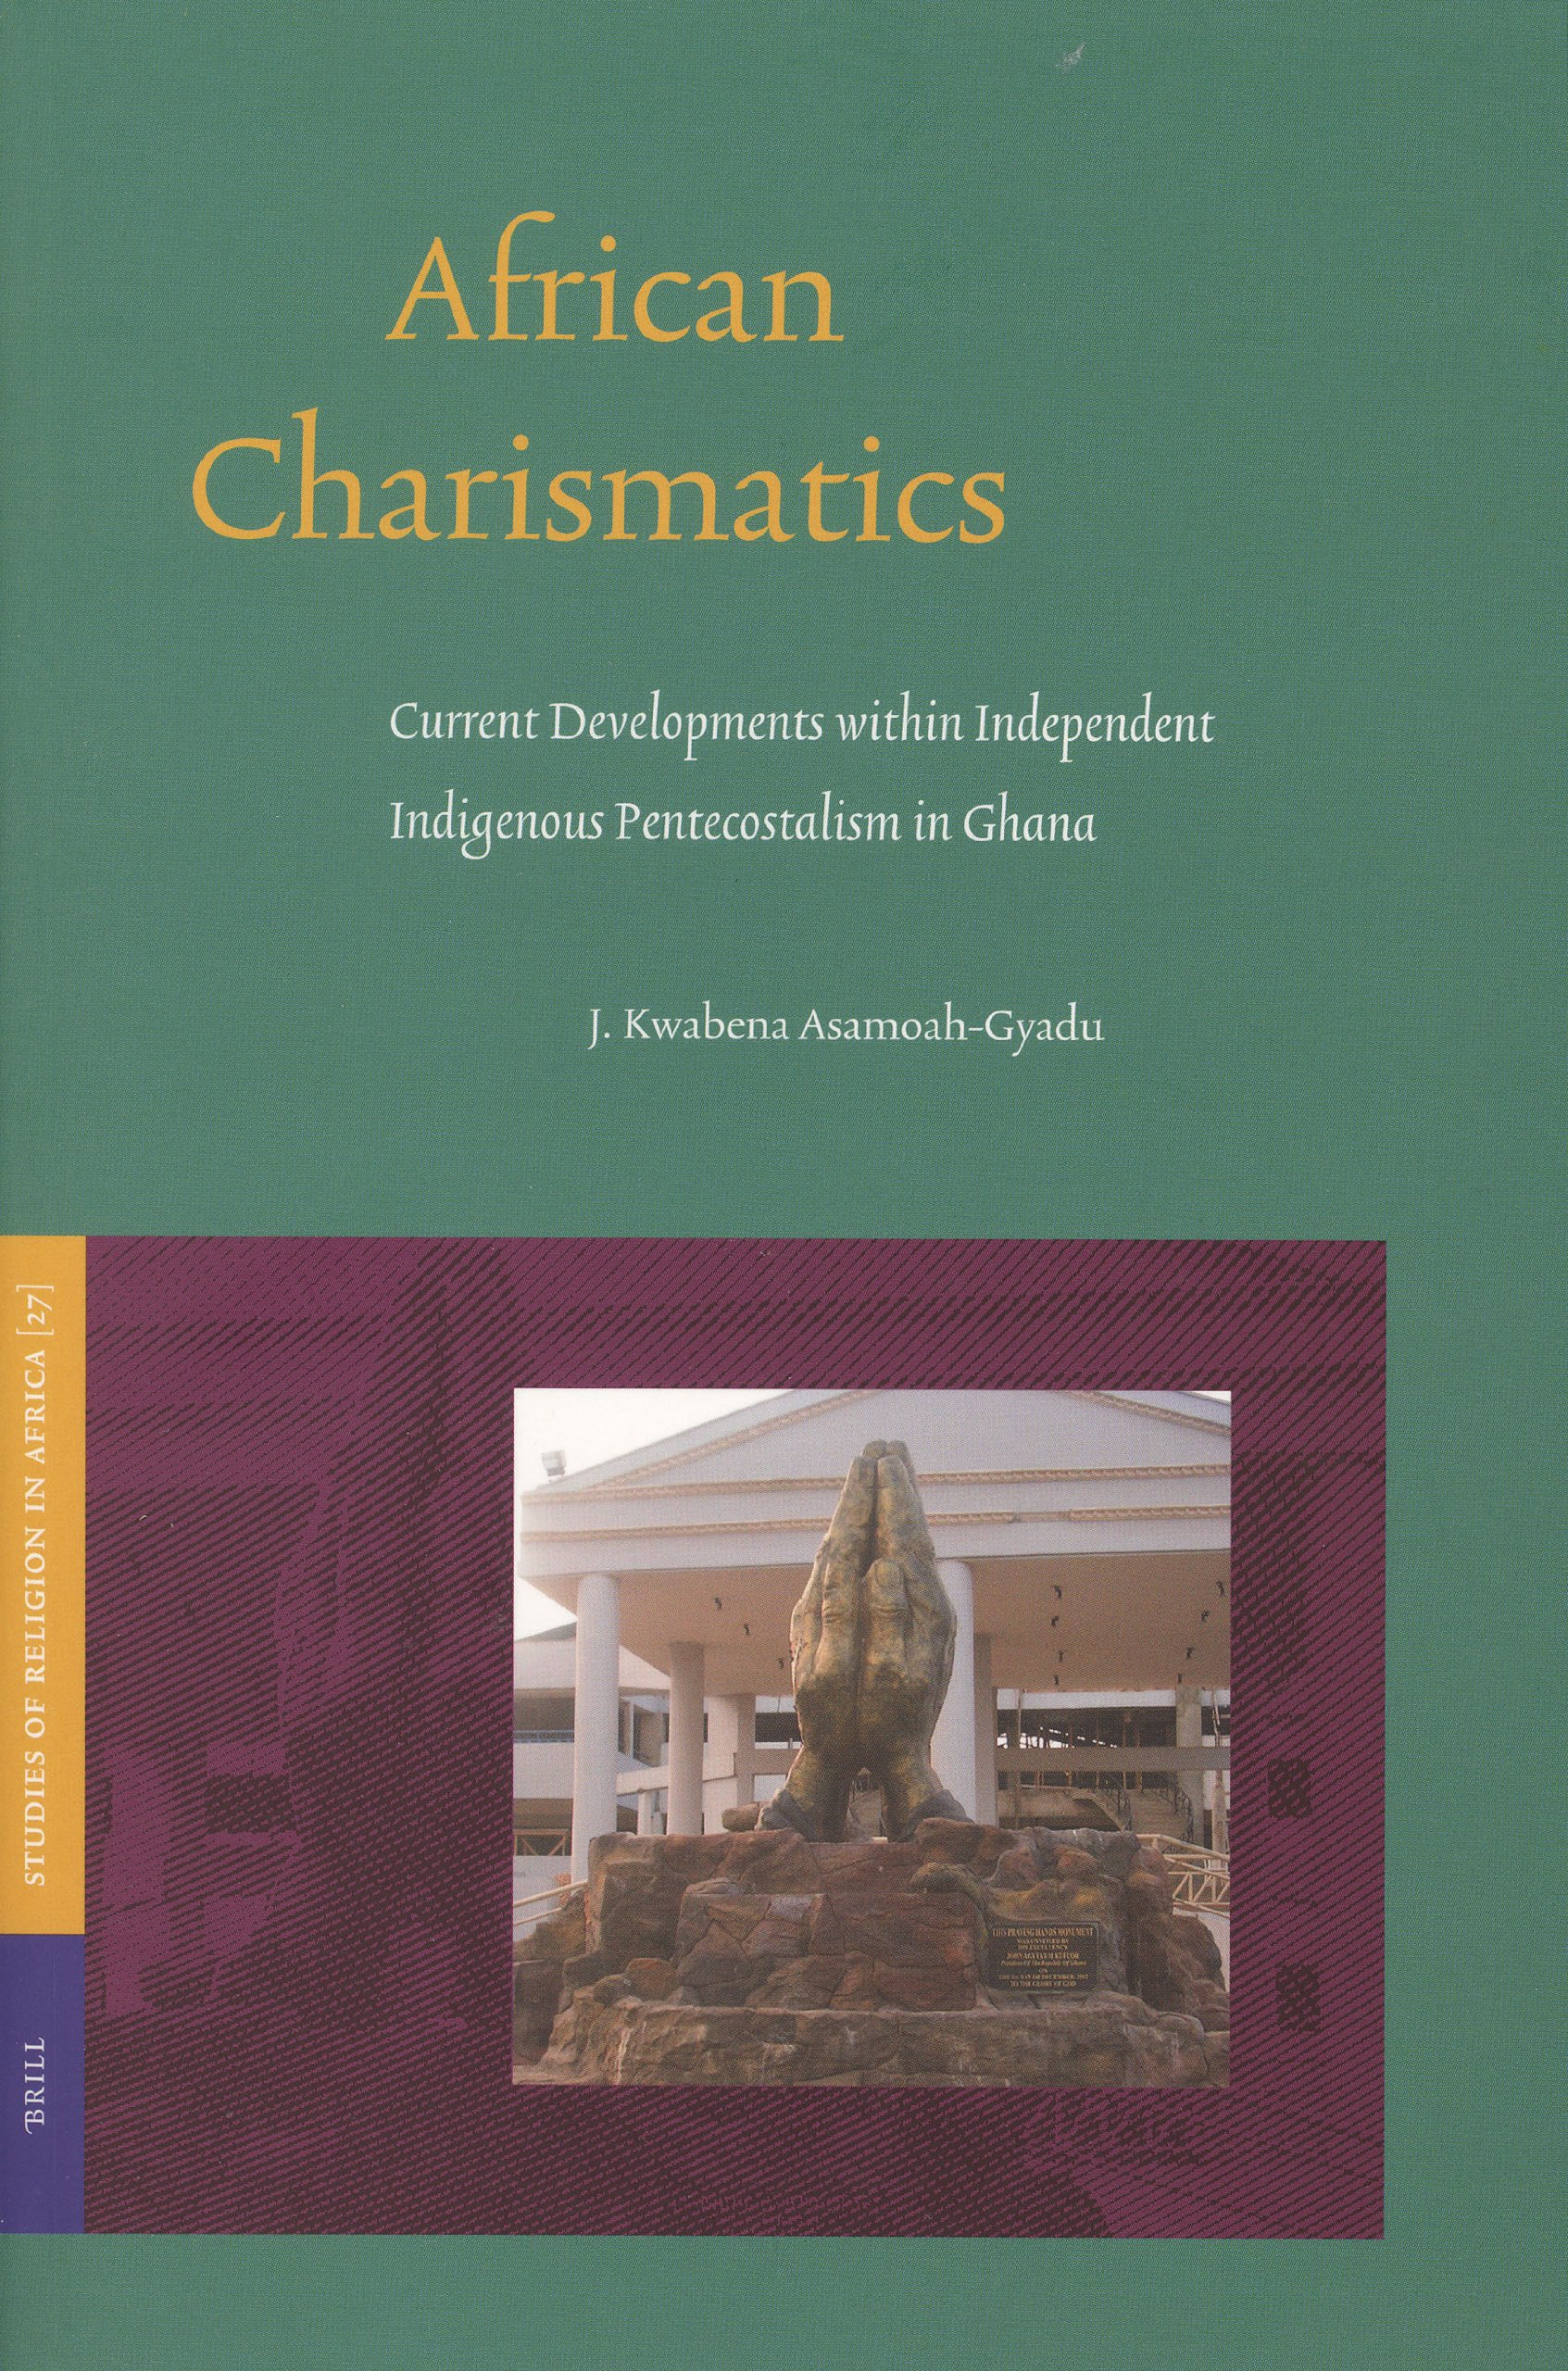 Download African Charismatics: Current Developments Within Independent Indigenous Pentecostalism in Ghana (Studies of Religion in Africa) PDF